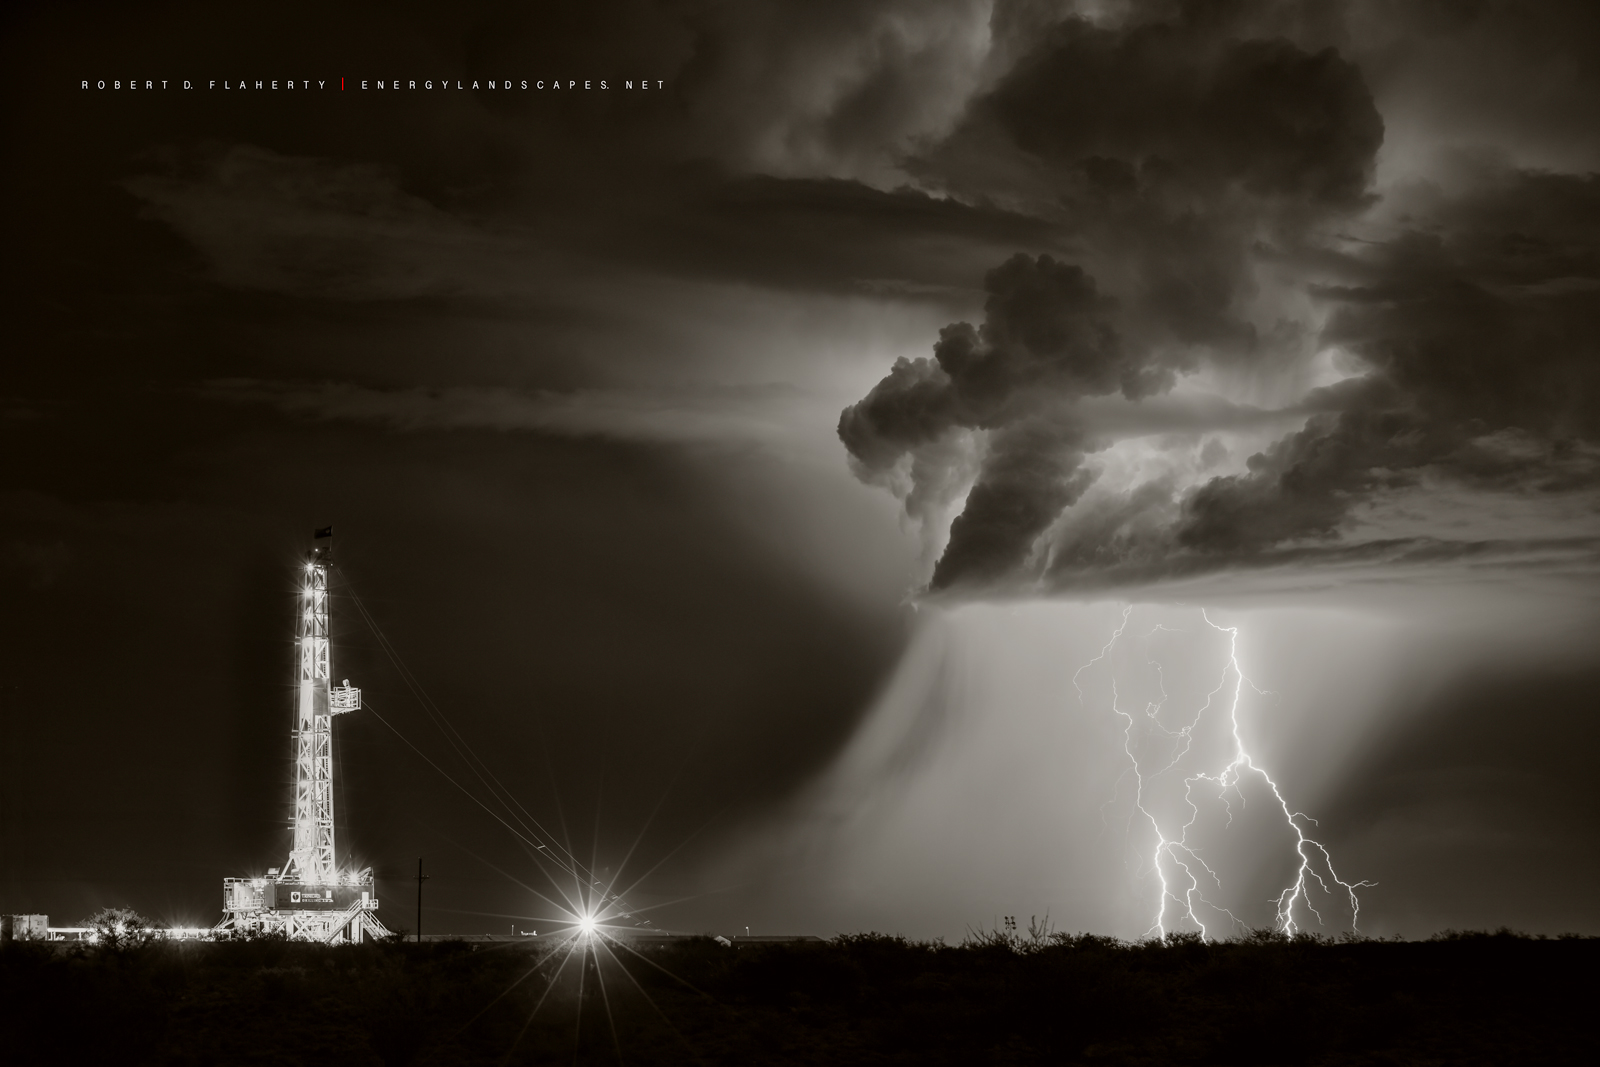 Delaware Basin, Permian Basin, drilling rig, lightning, night, monsoon, Orla Texas, shale exploration, thunderstorm, Texas, fine art, oil & gas, composite photography, lightning photography, composite, photo